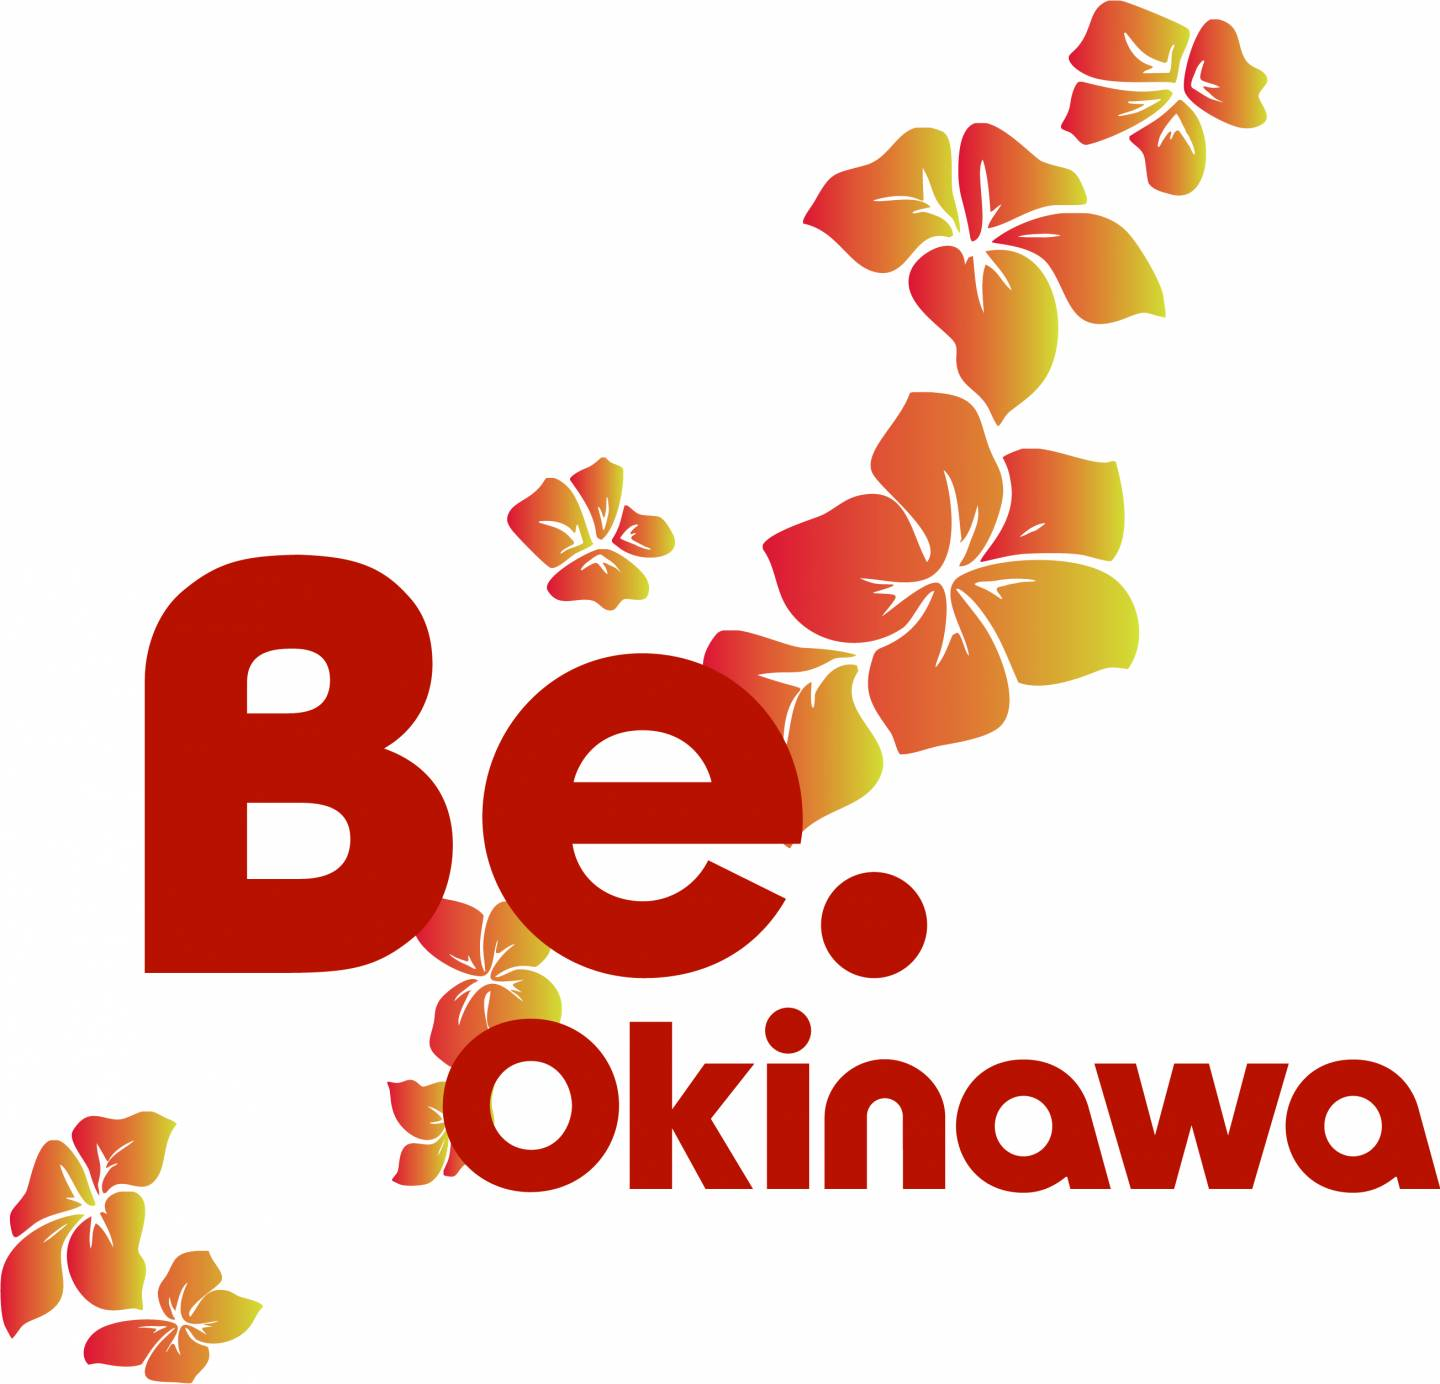 Be Okinawa Logo